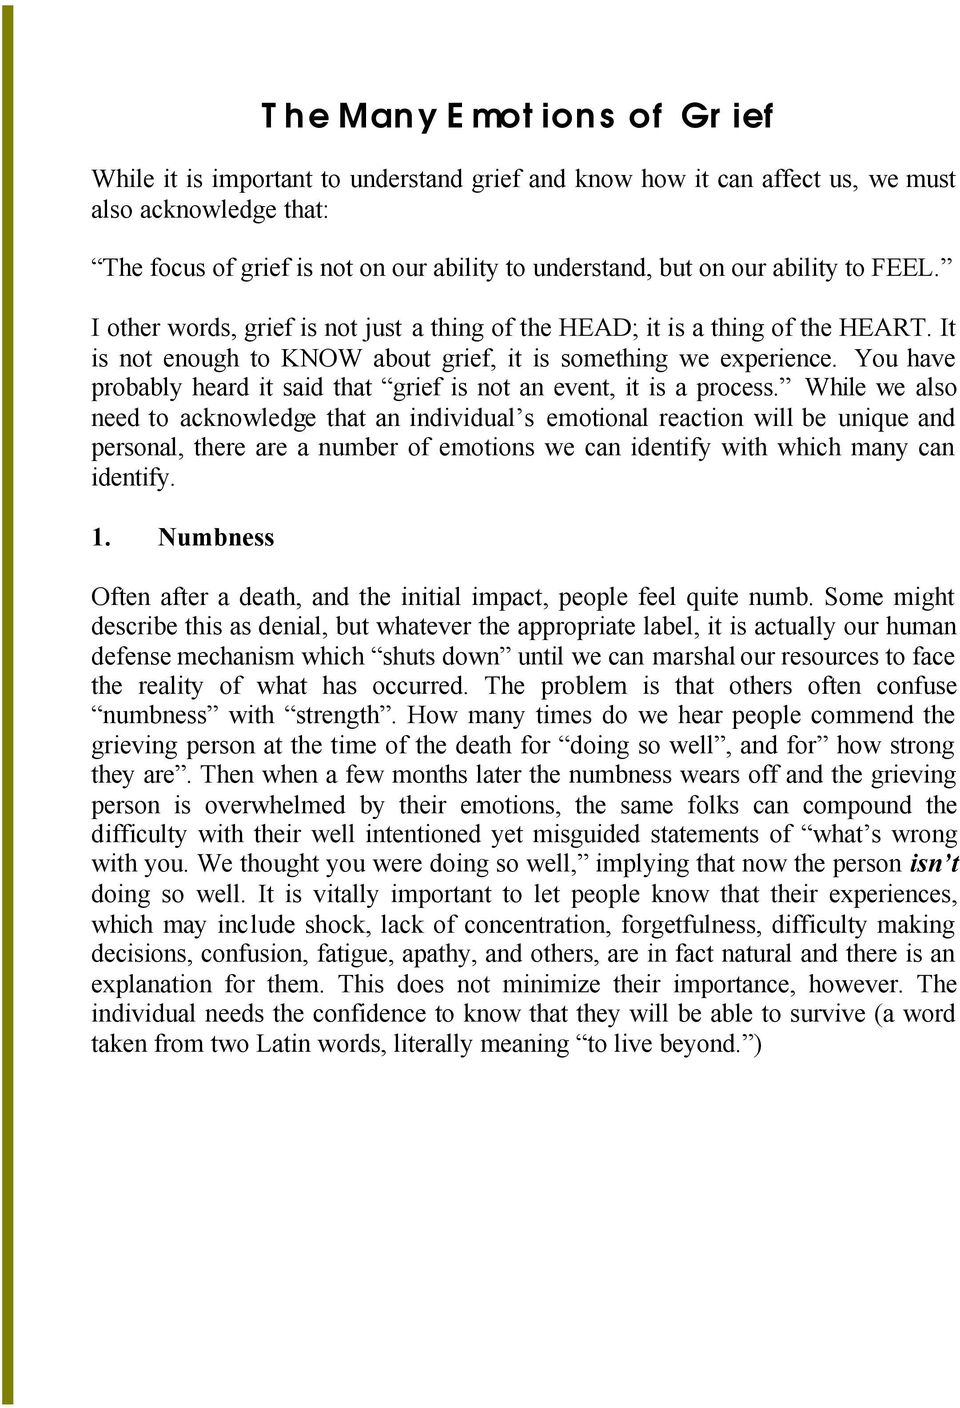 You have probably heard it said that grief is not an event, it is a process.